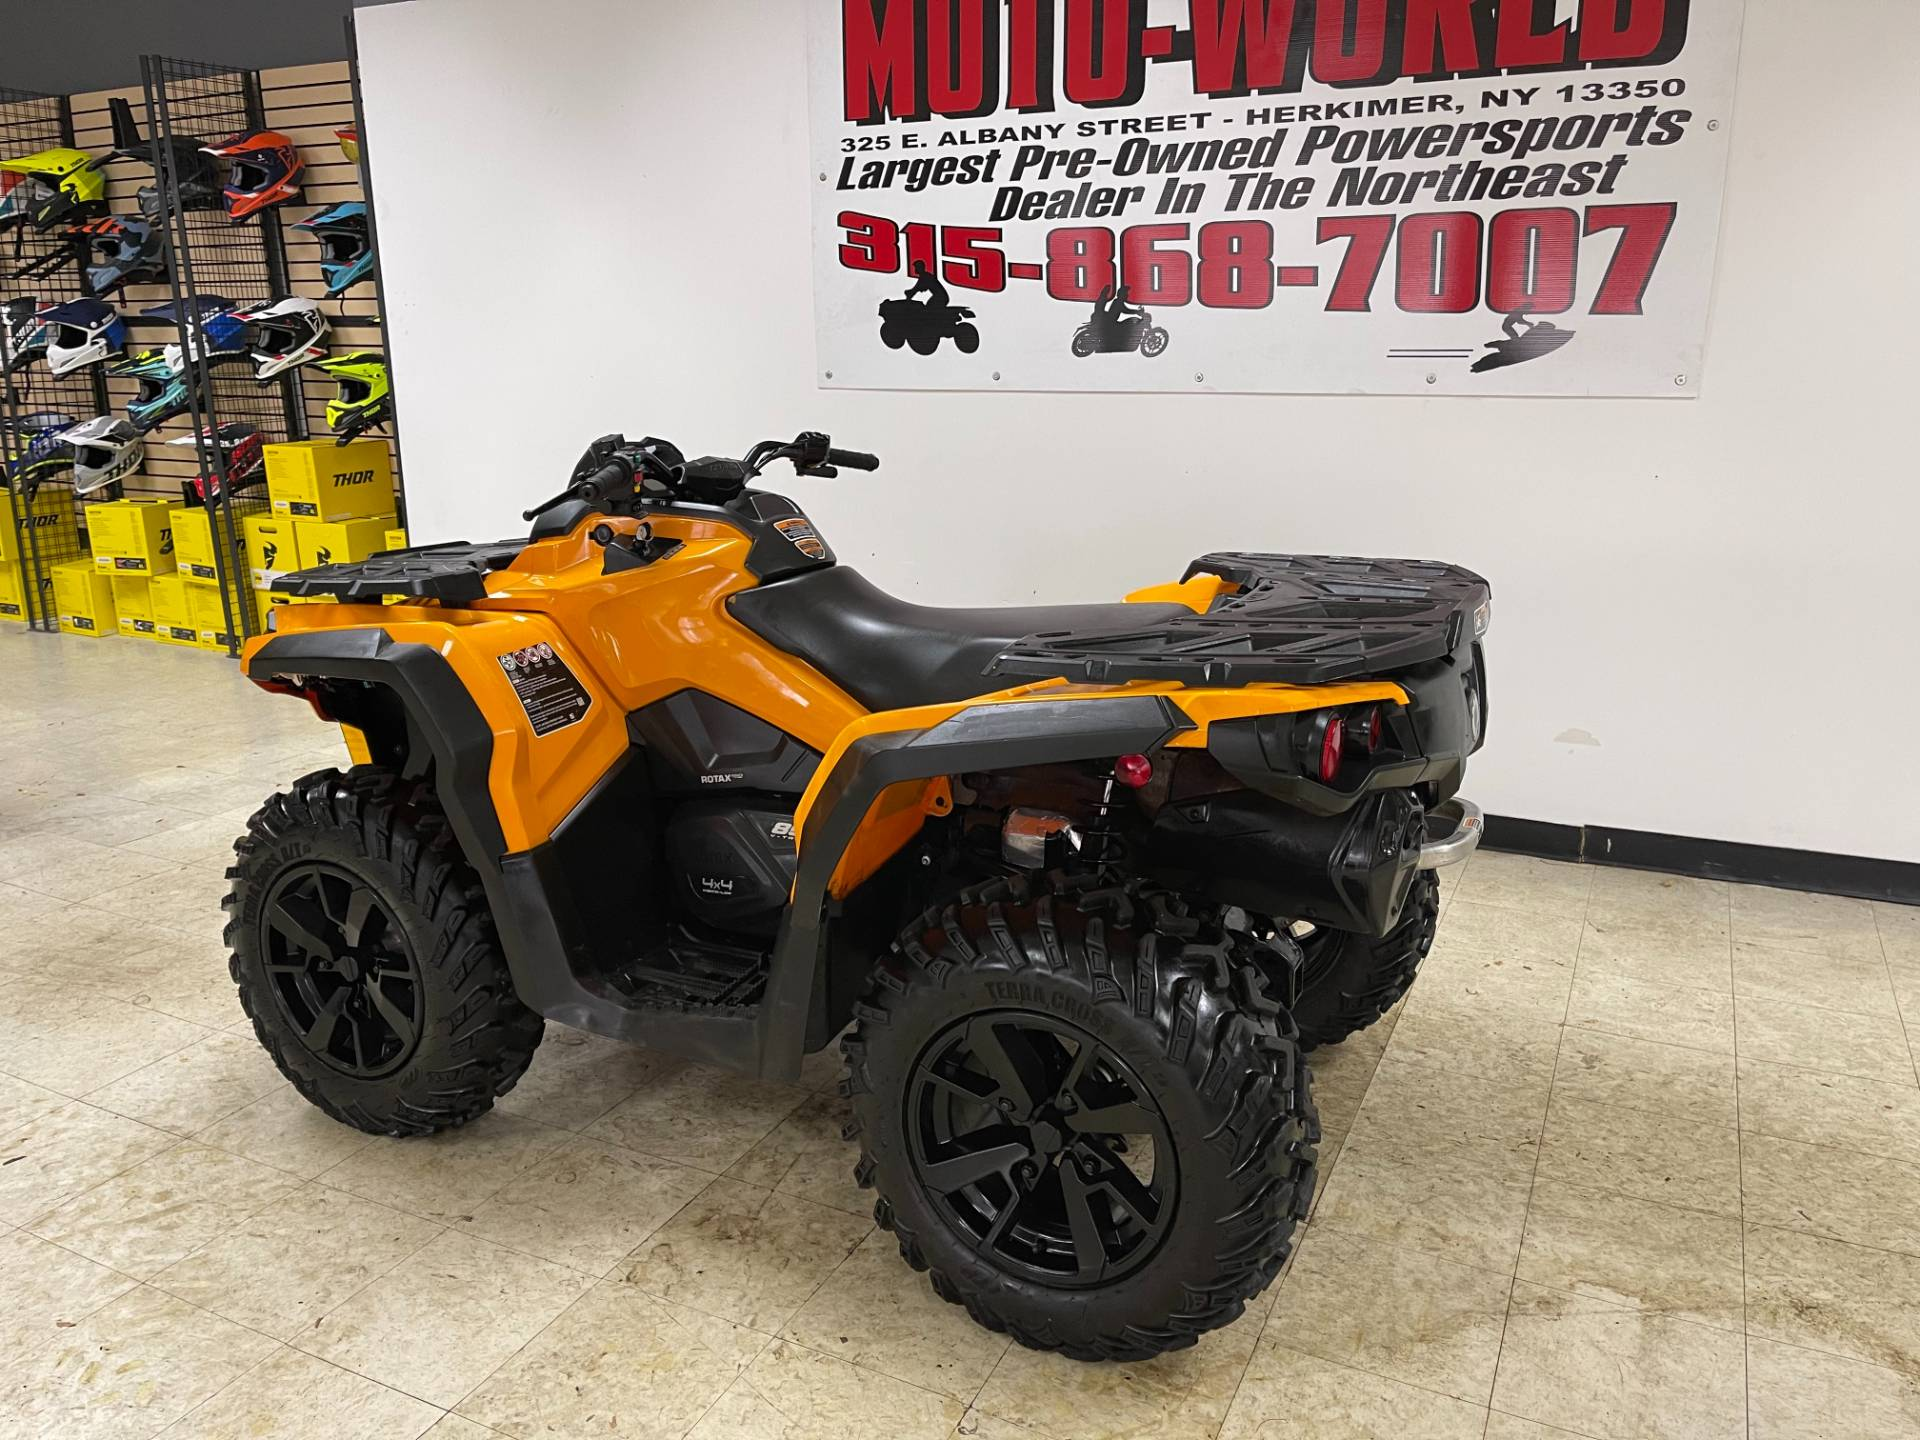 2019 Can-Am Outlander DPS 850 in Herkimer, New York - Photo 2